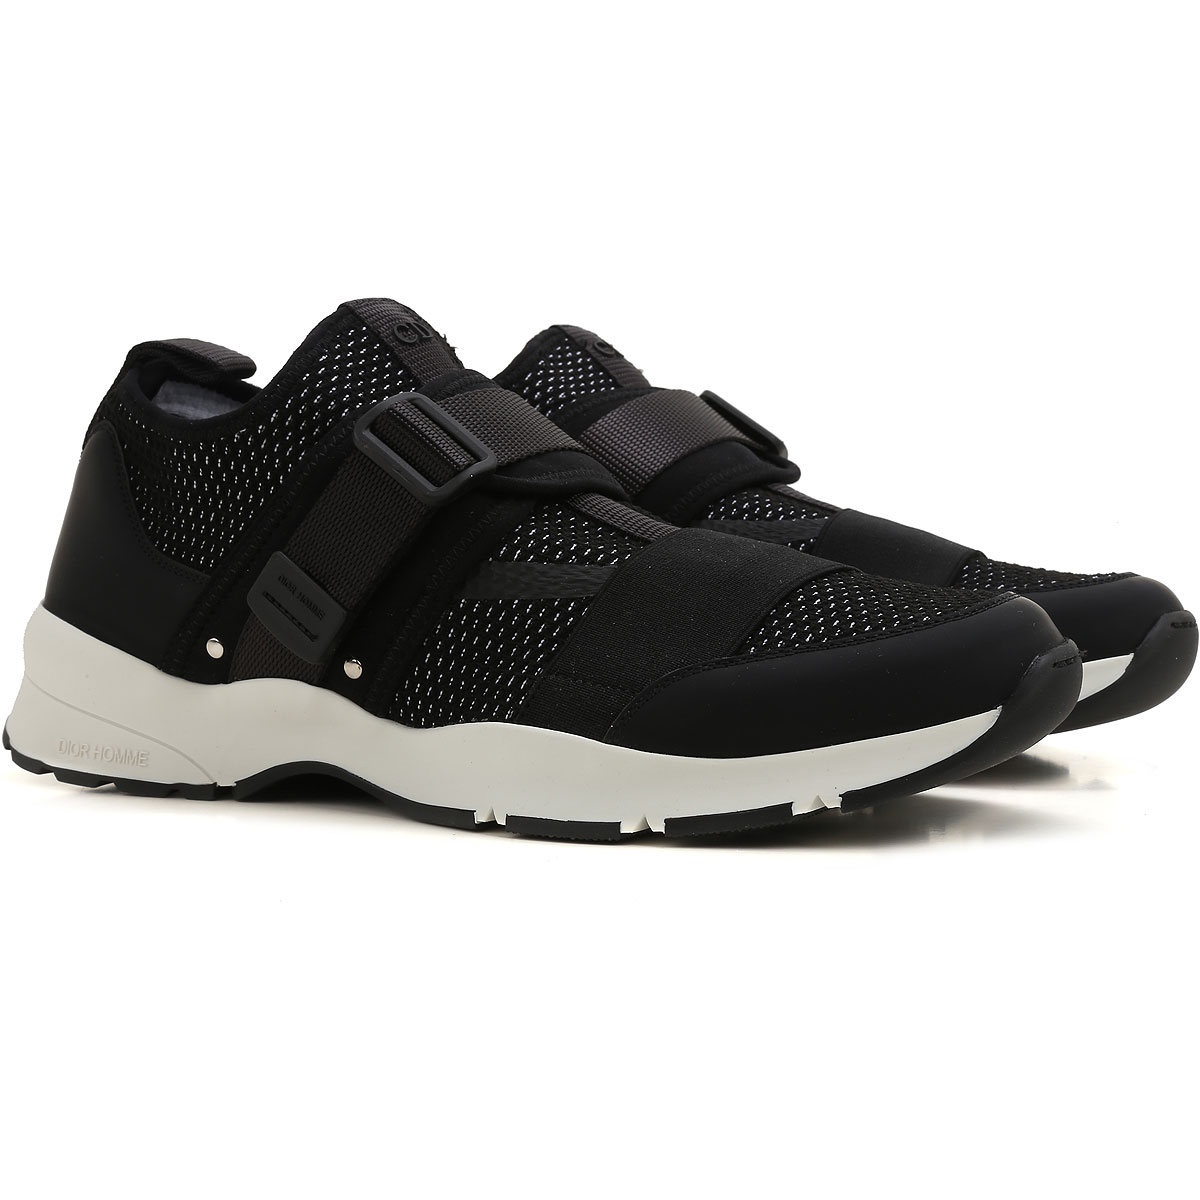 Christian Dior Sneakers for Men On Sale, Black, Fabric, 2017, 6.5 9 9.5